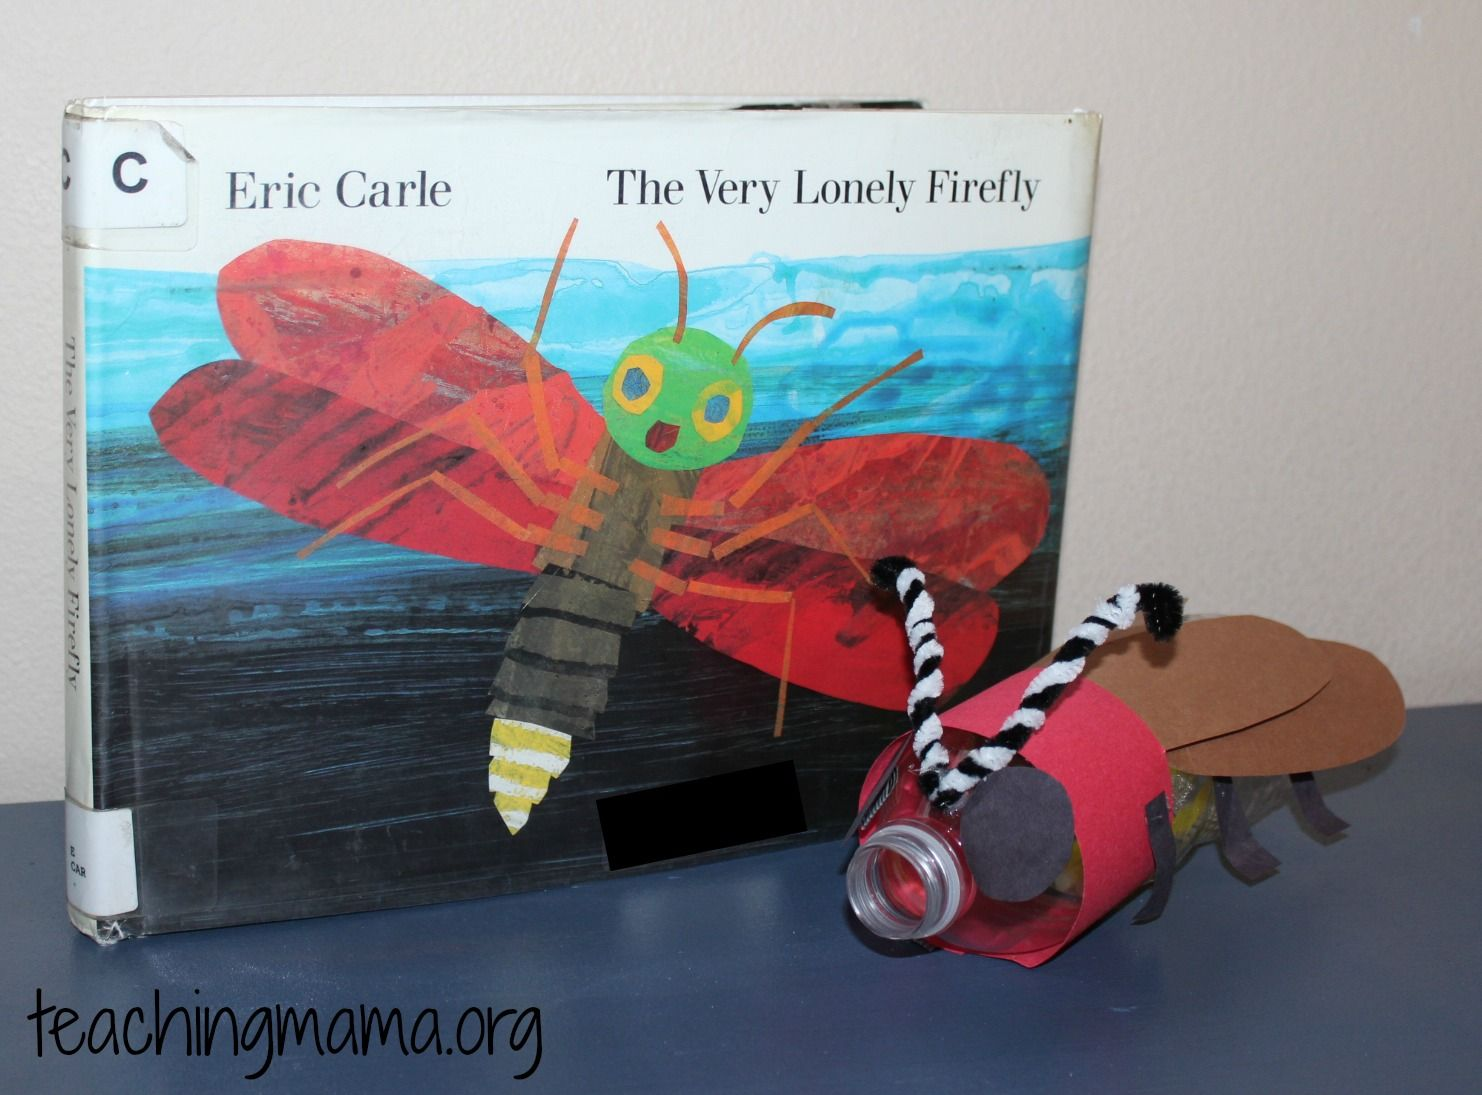 We've been studying bugs and insects this summer and one creature my boys have been so interested in lately are fireflies! They really are fascinating insects andit's been fun to see themoutside glowing in the summer night. Starting out, we read The Very Lonely Firefly, by Eric Carle. Although this is a fictional story, it …